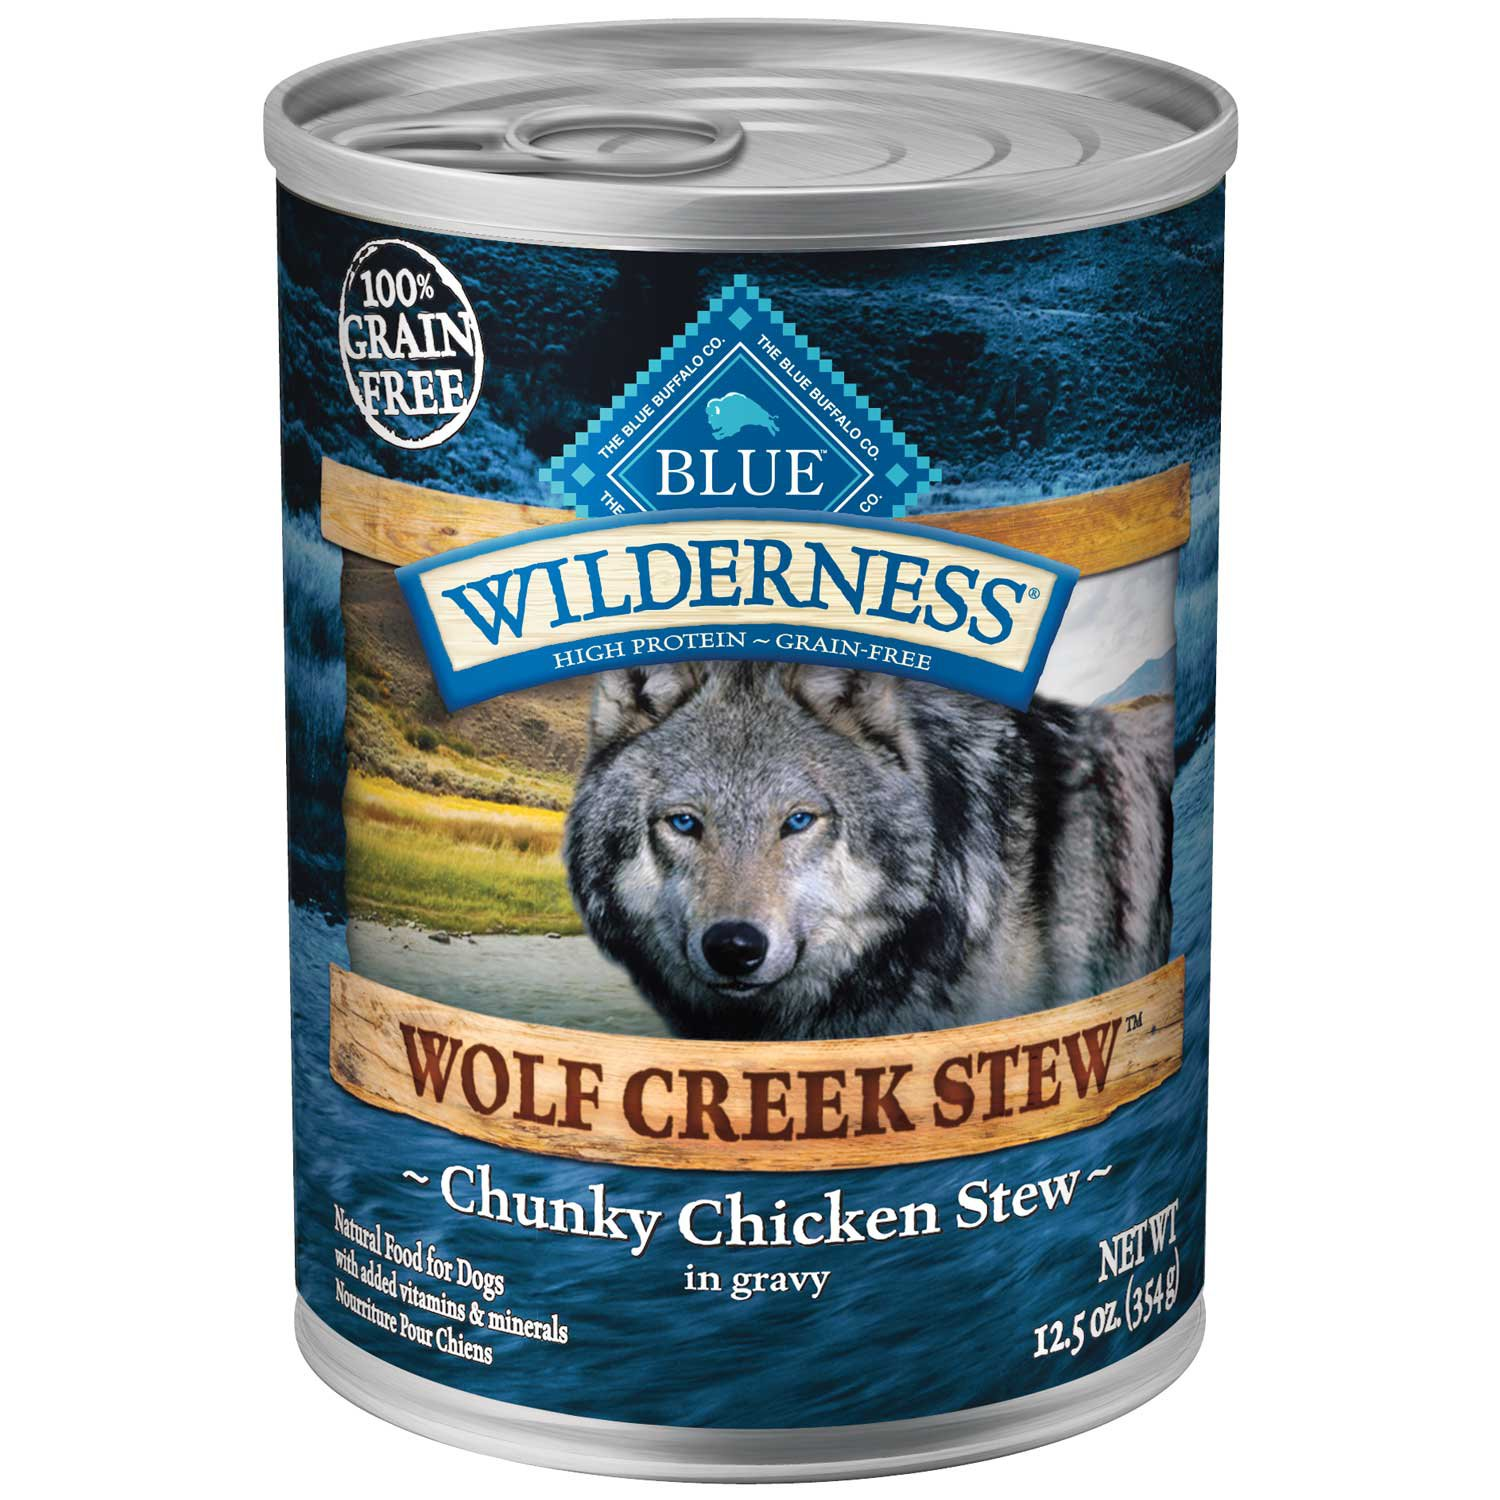 Bkue Wilderness Canned Dog Food